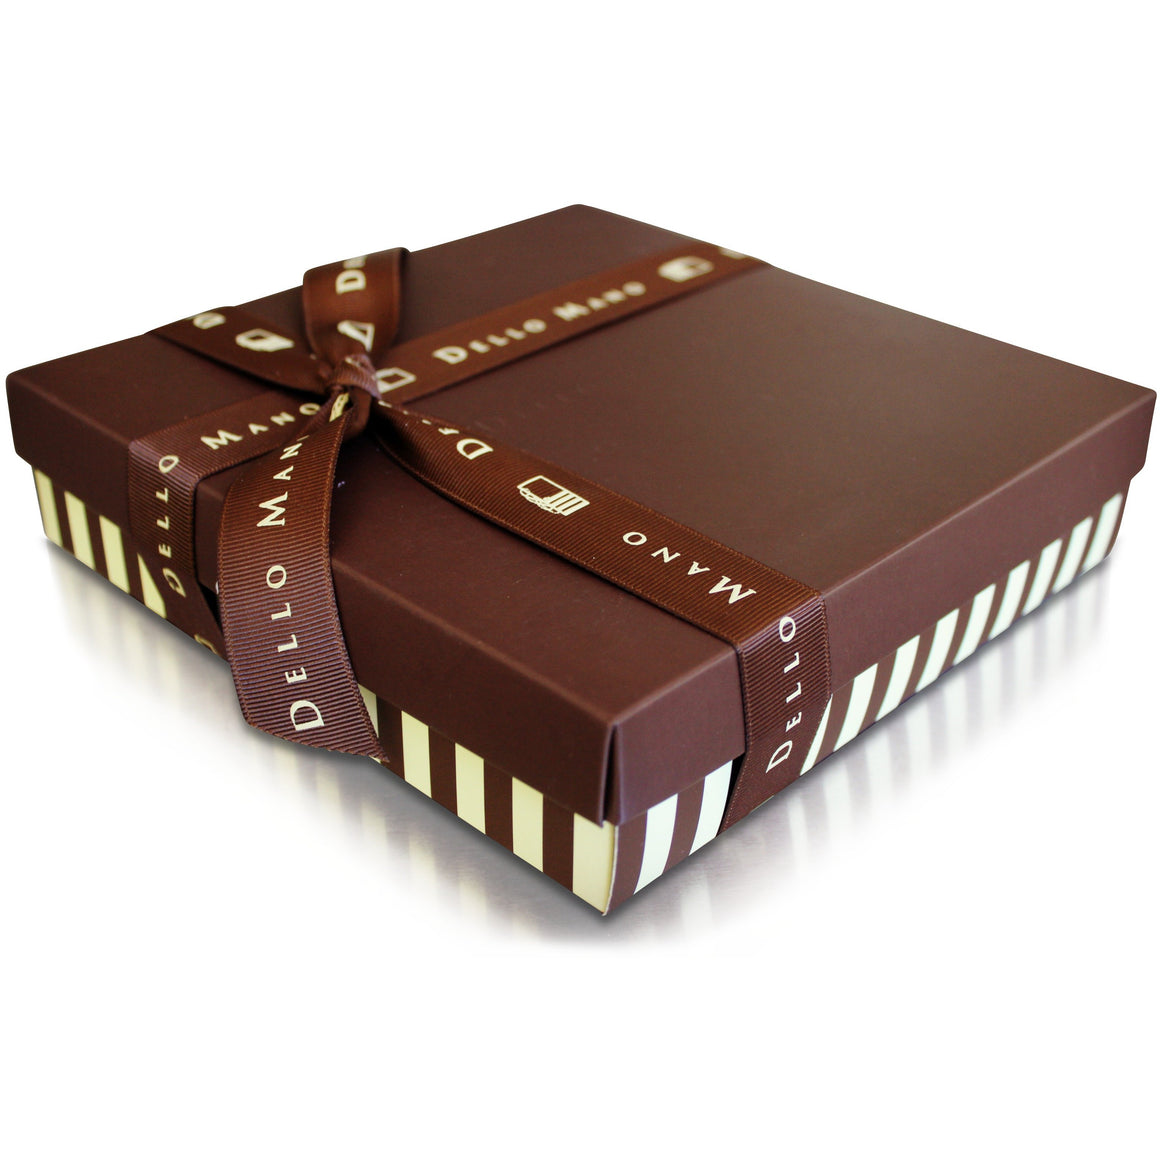 Dello Mano Gift Basket of Luxury Brownies - this box is our Classic. Handmade with Belgian chocolate in small batches this chocolate gift basket led the brownie revolution in 2006